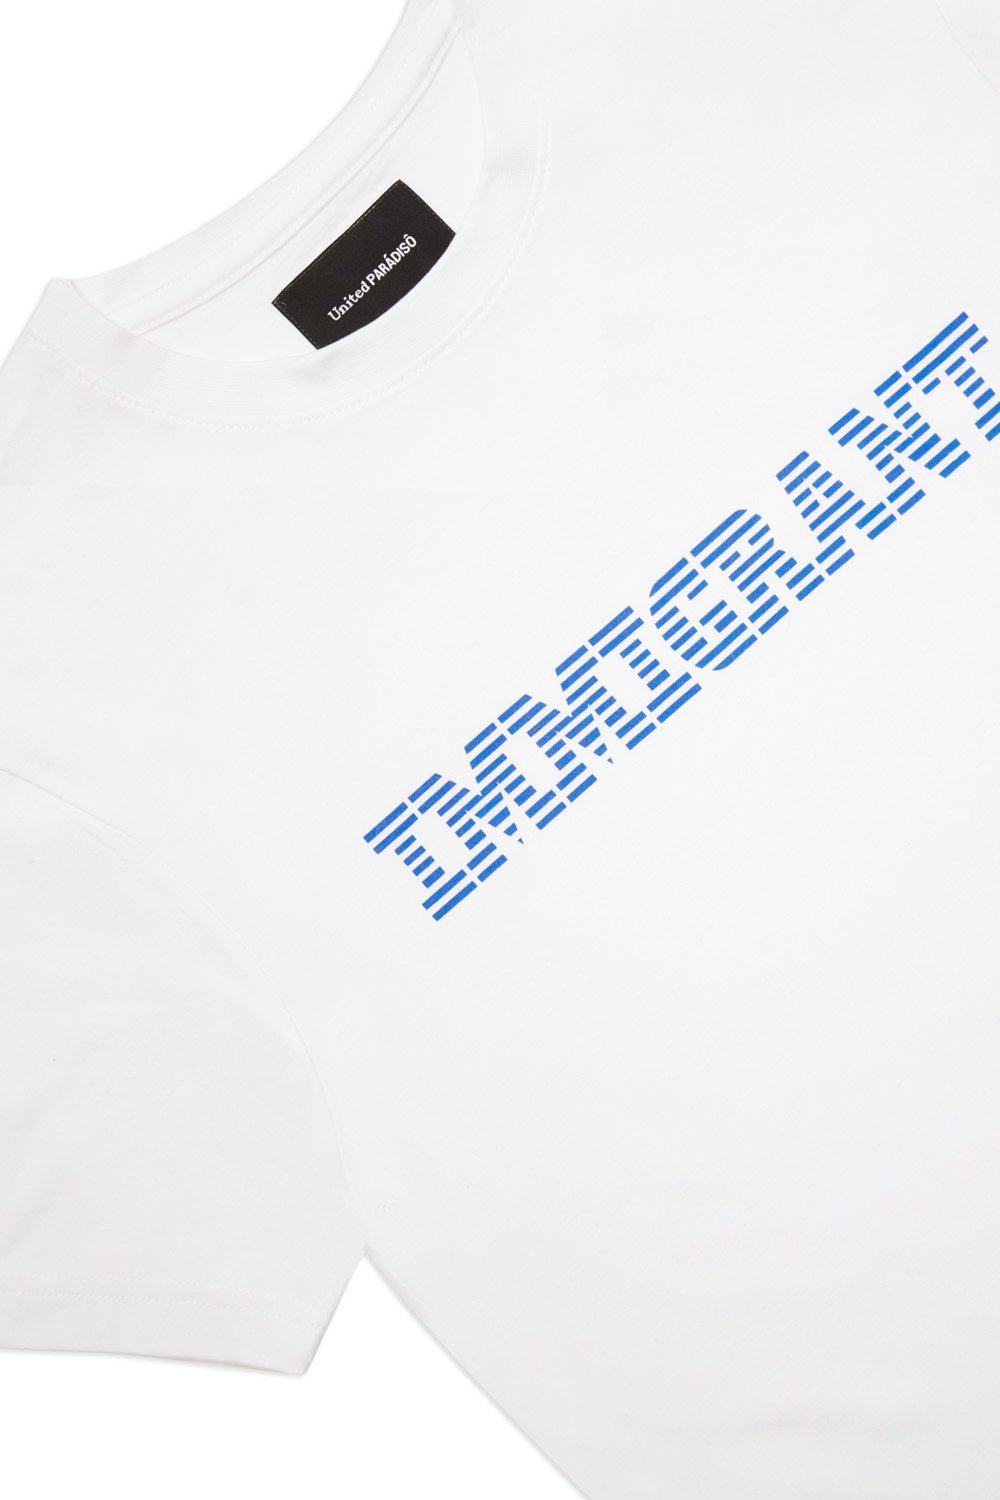 Load image into Gallery viewer, Paradiso White Immigrant Short-Sleeved Supima Charity T-Shirt Front Detail